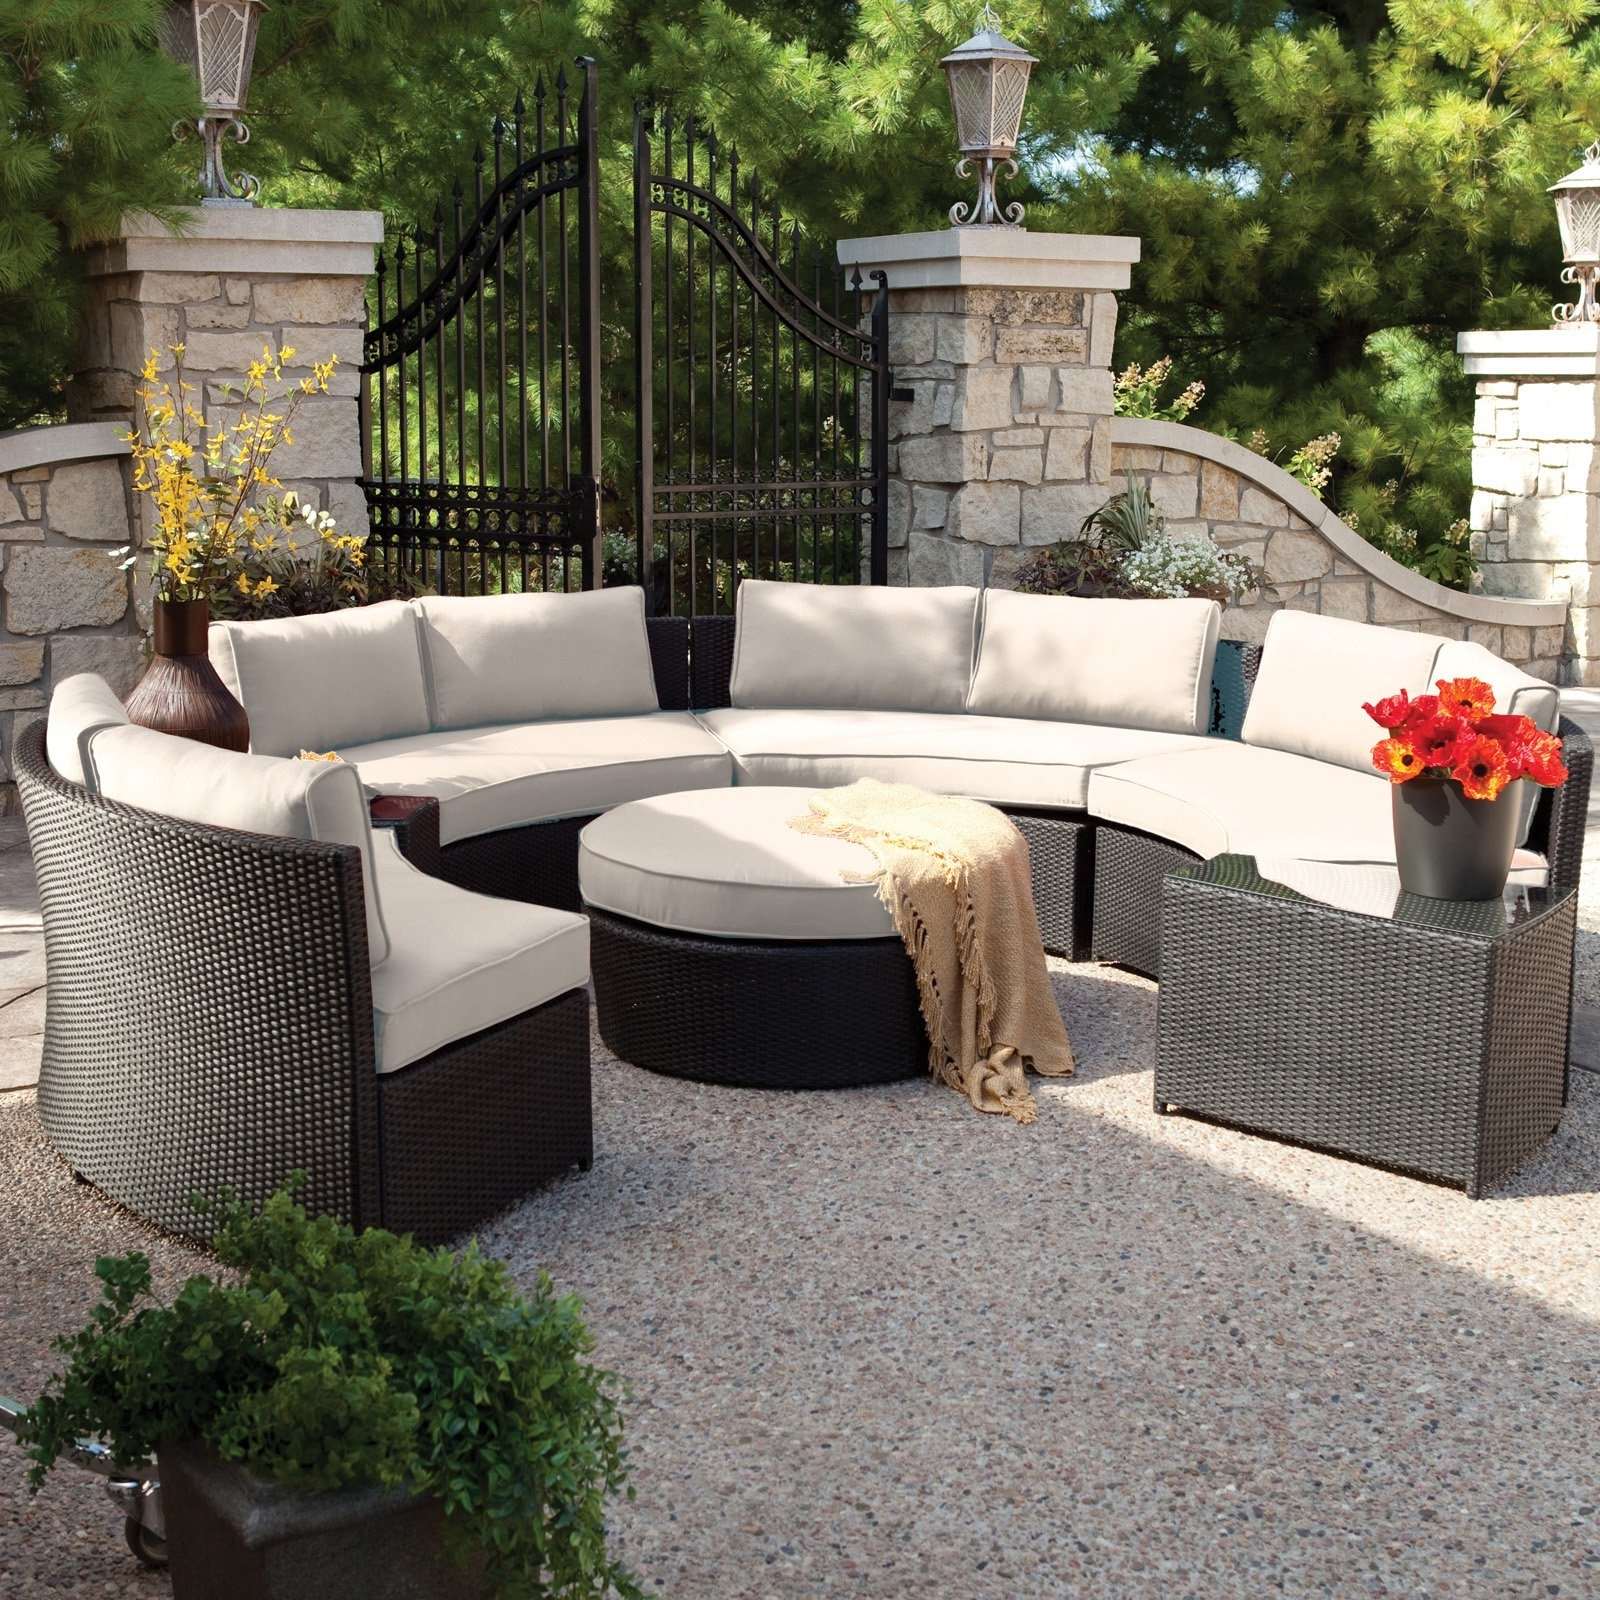 Belham Living Meridian Round Outdoor Wicker Patio Furniture Set With With Regard To 2019 Patio Conversation Sets (View 8 of 20)